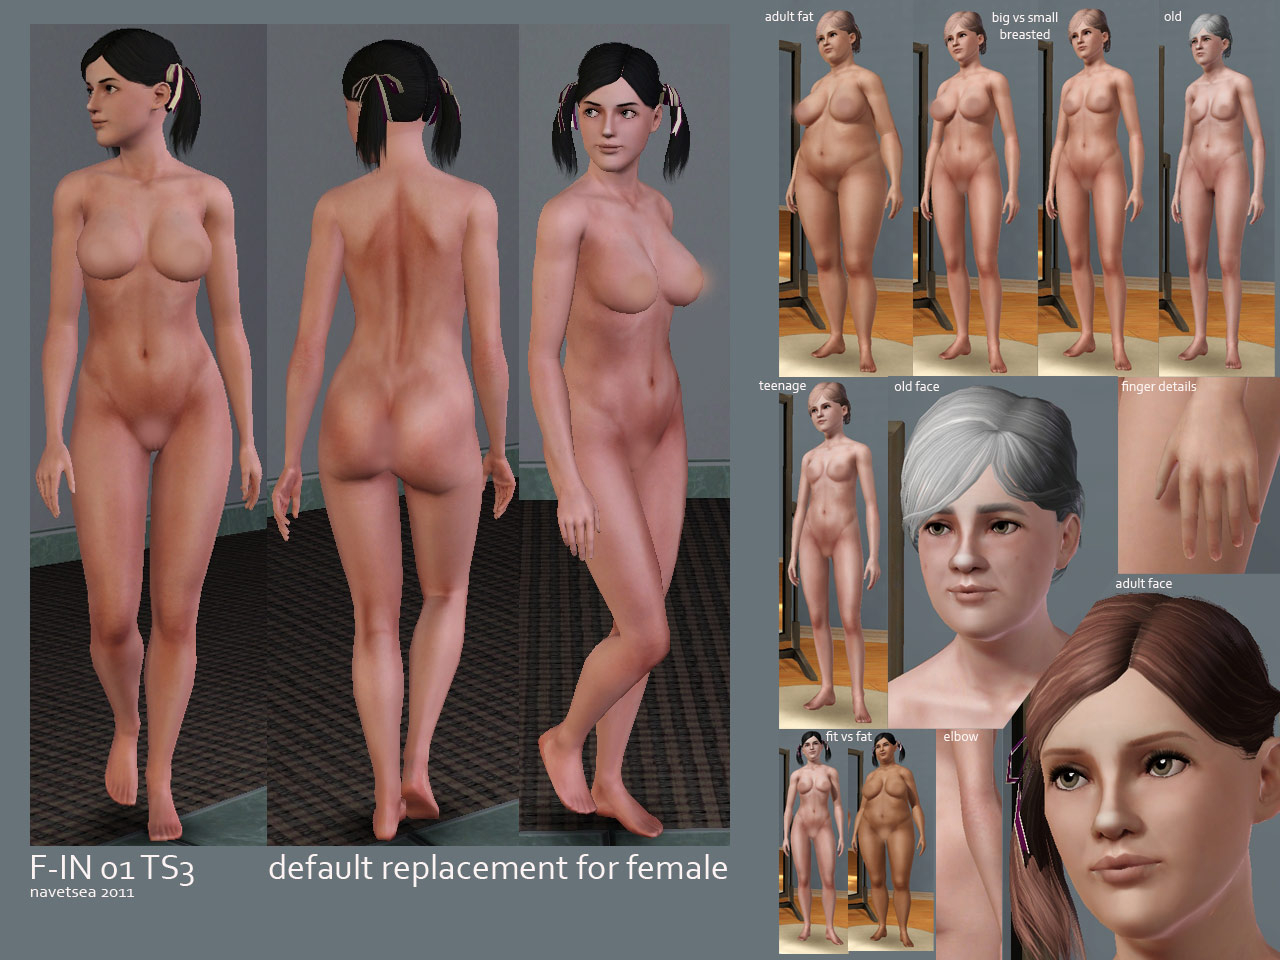 The sims 3 sex animations mod exposed pics